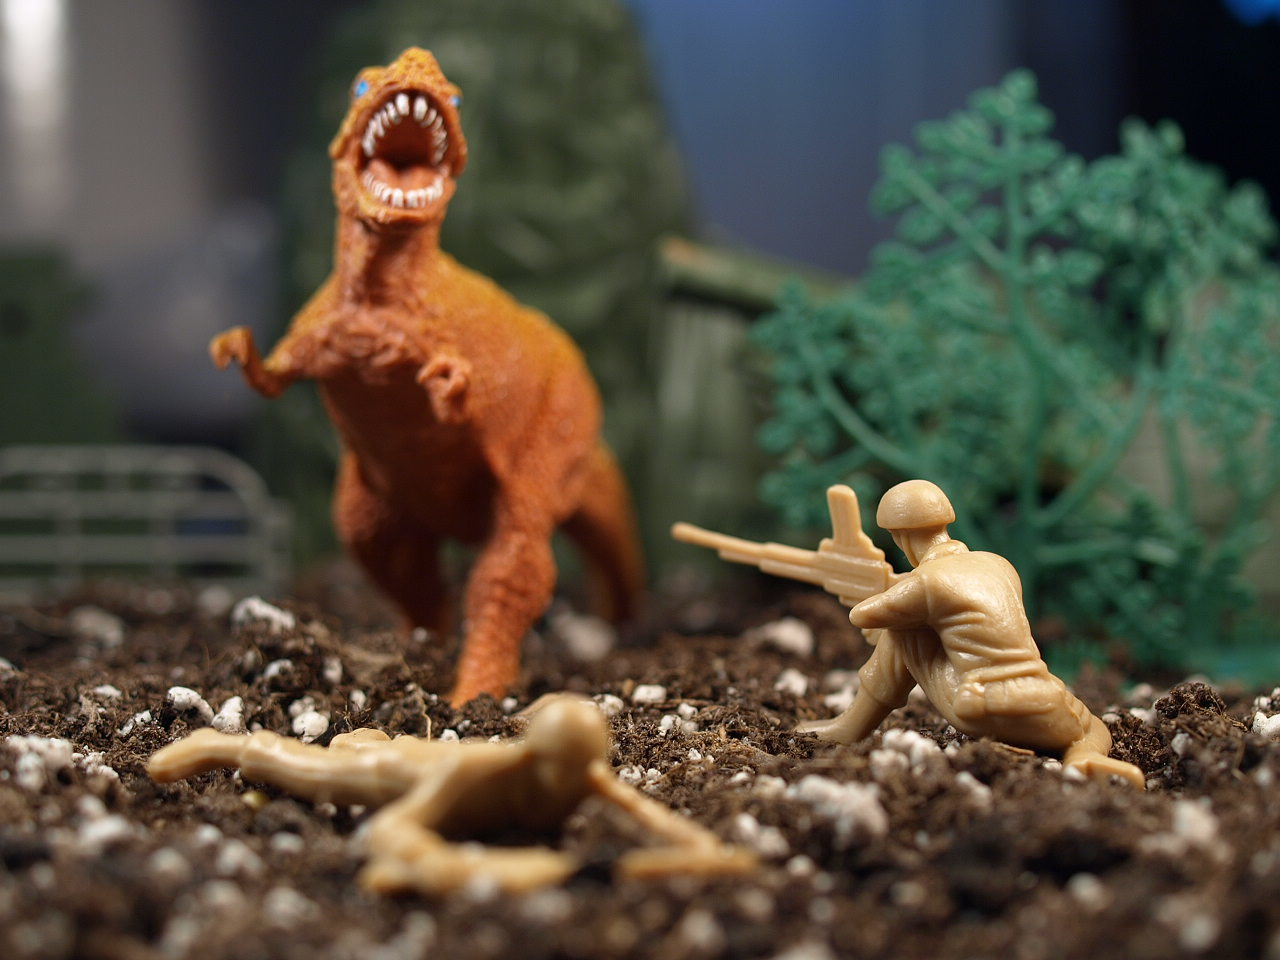 soldiers Dinosaurs toys (children)